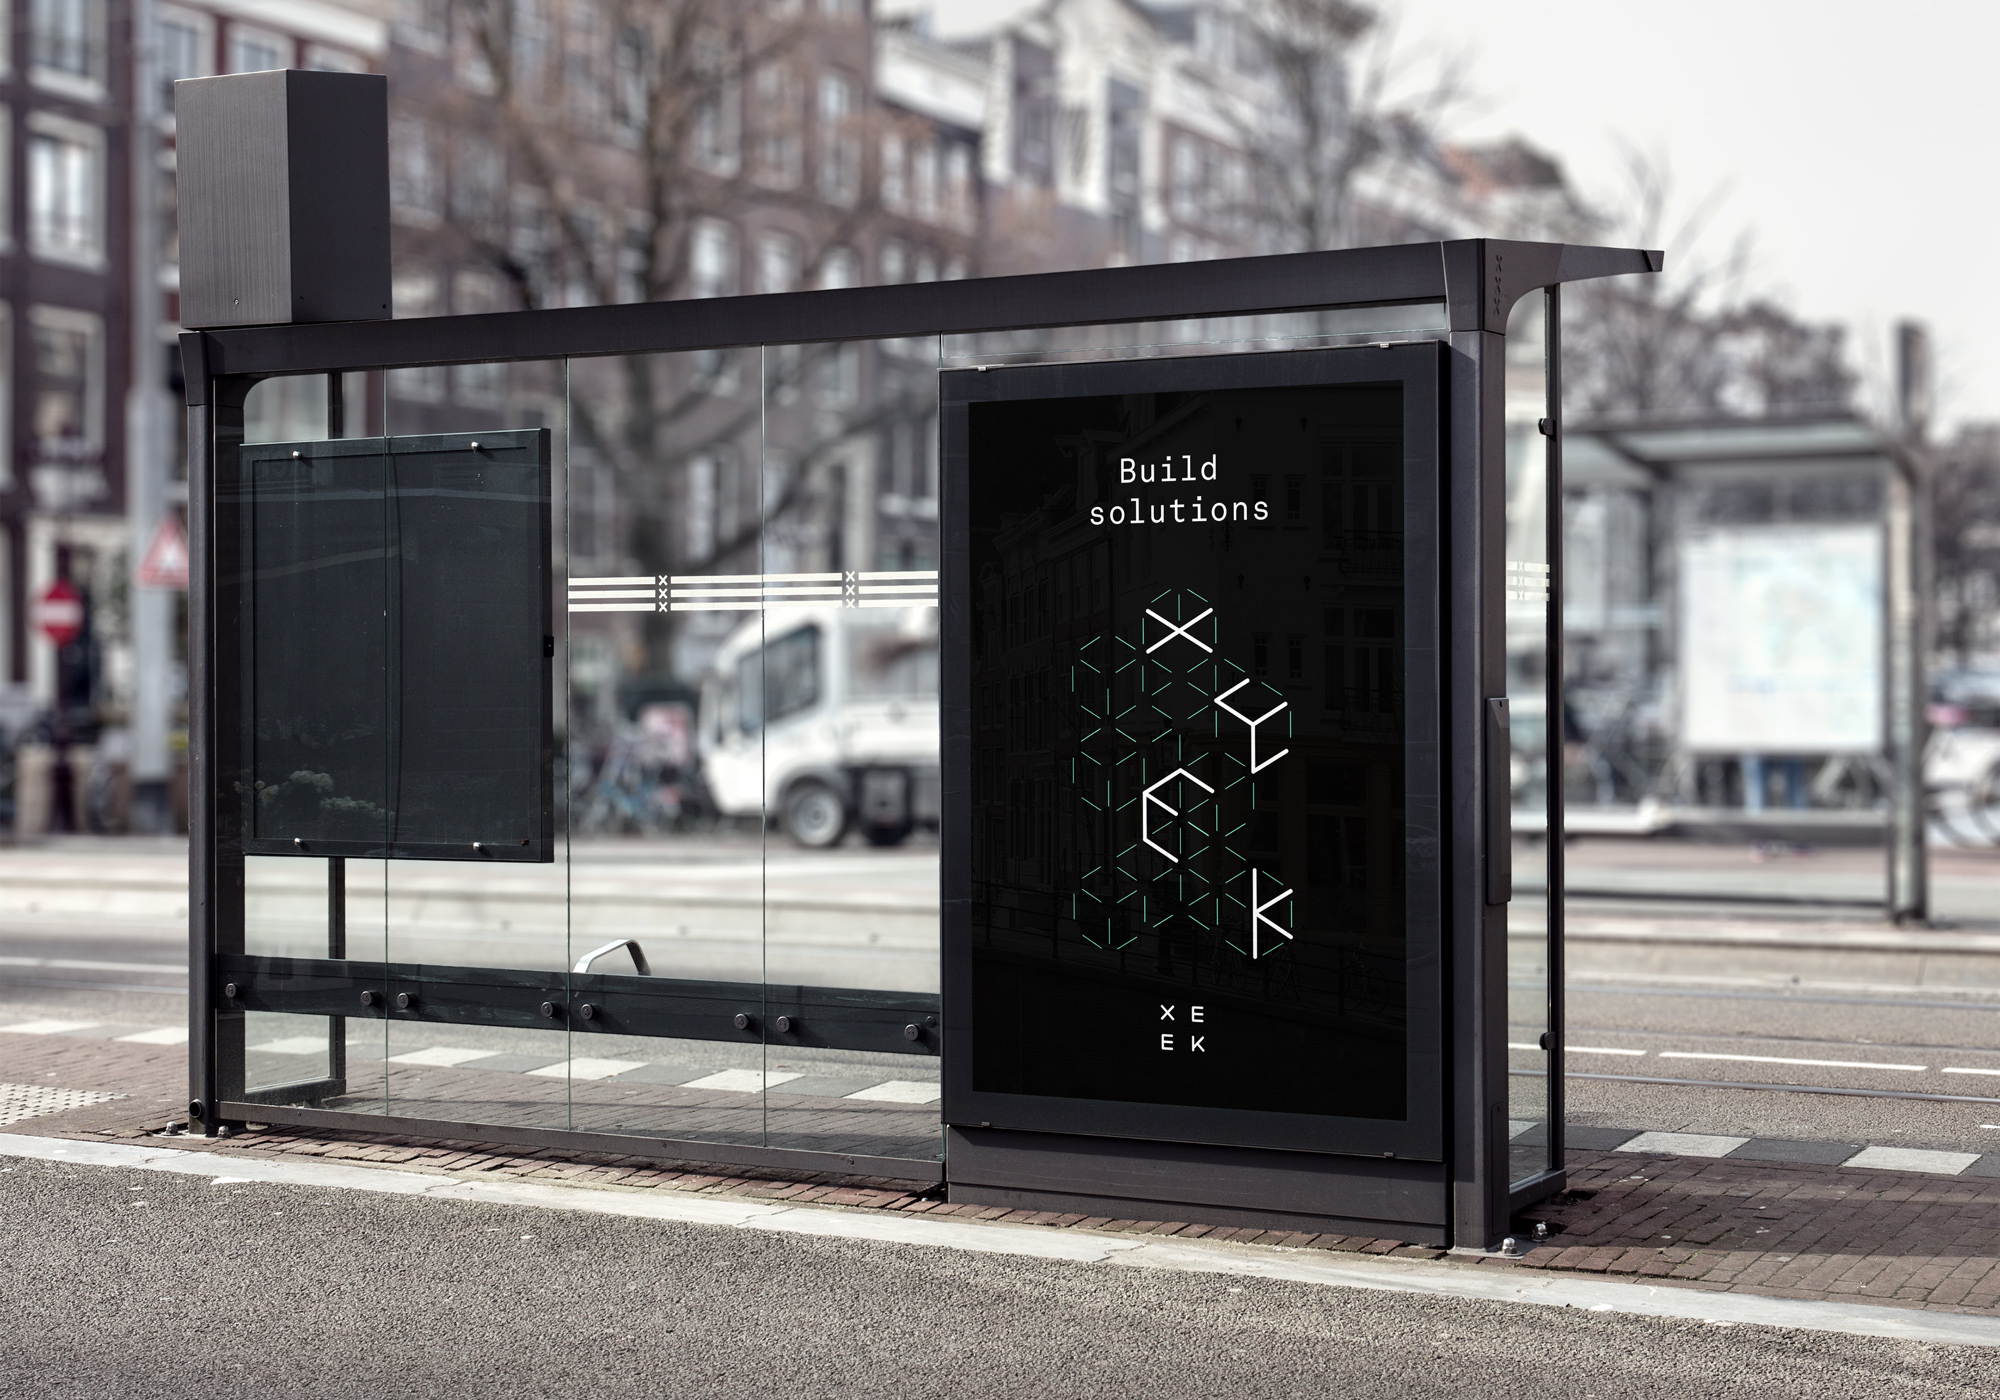 Bus-Stop-Billboard-MockUp-4